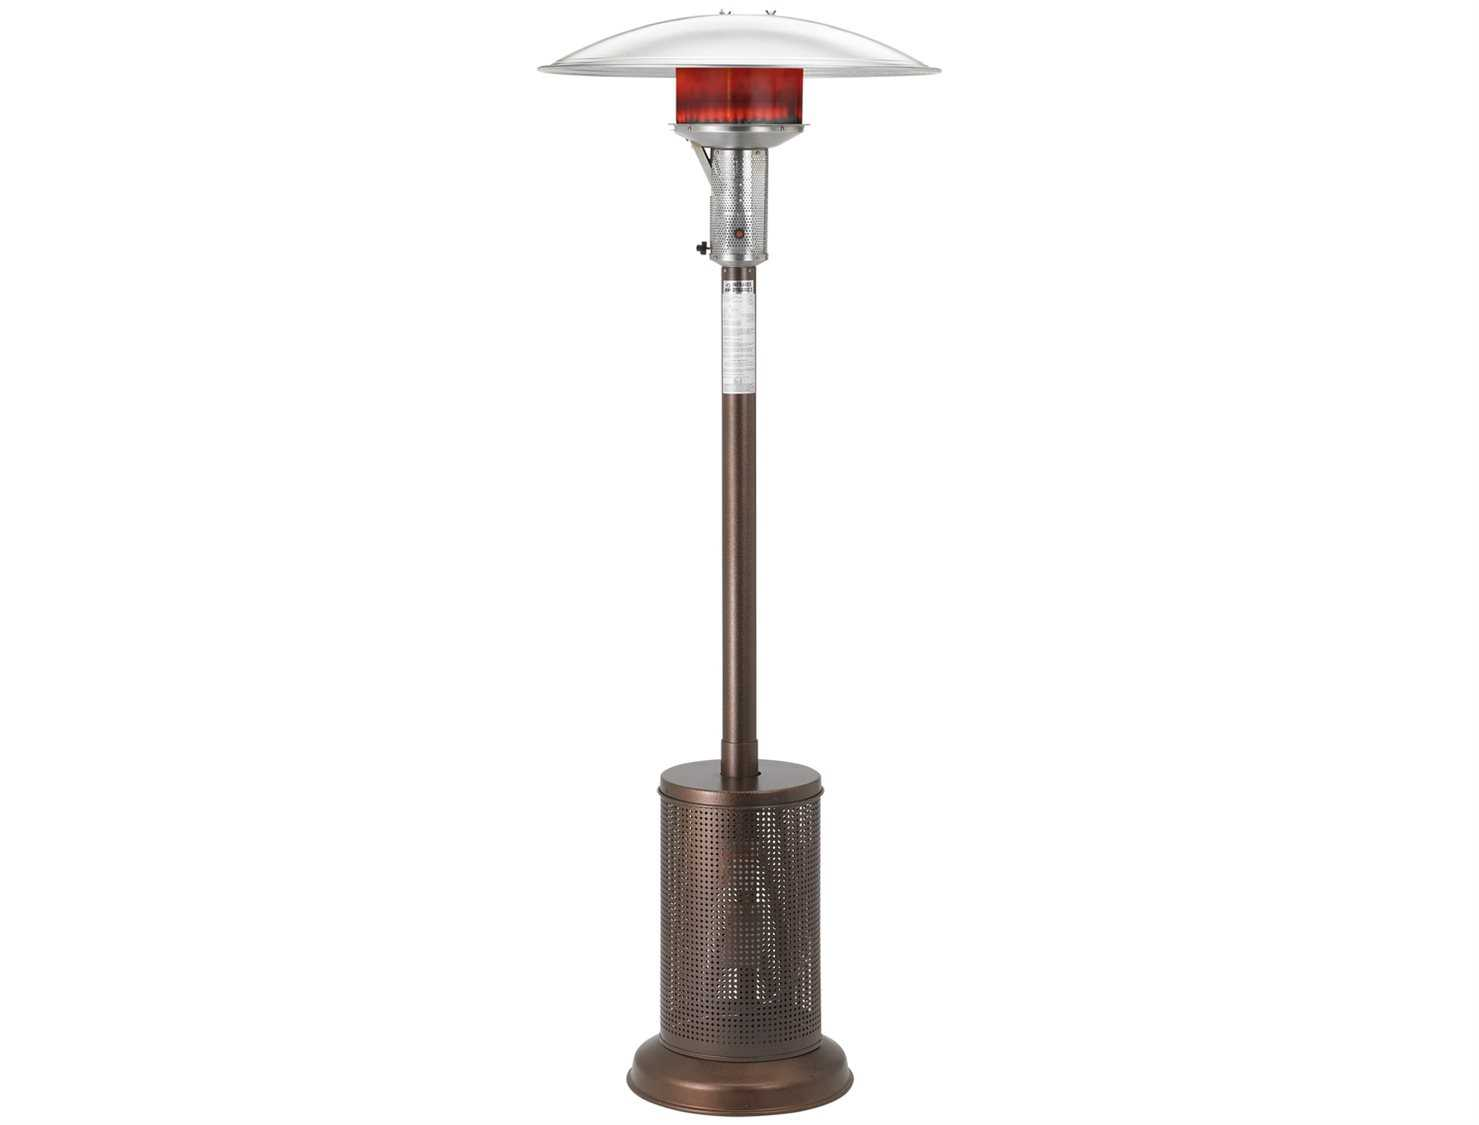 Sunglo Steel Bronze Portable Propane Heater